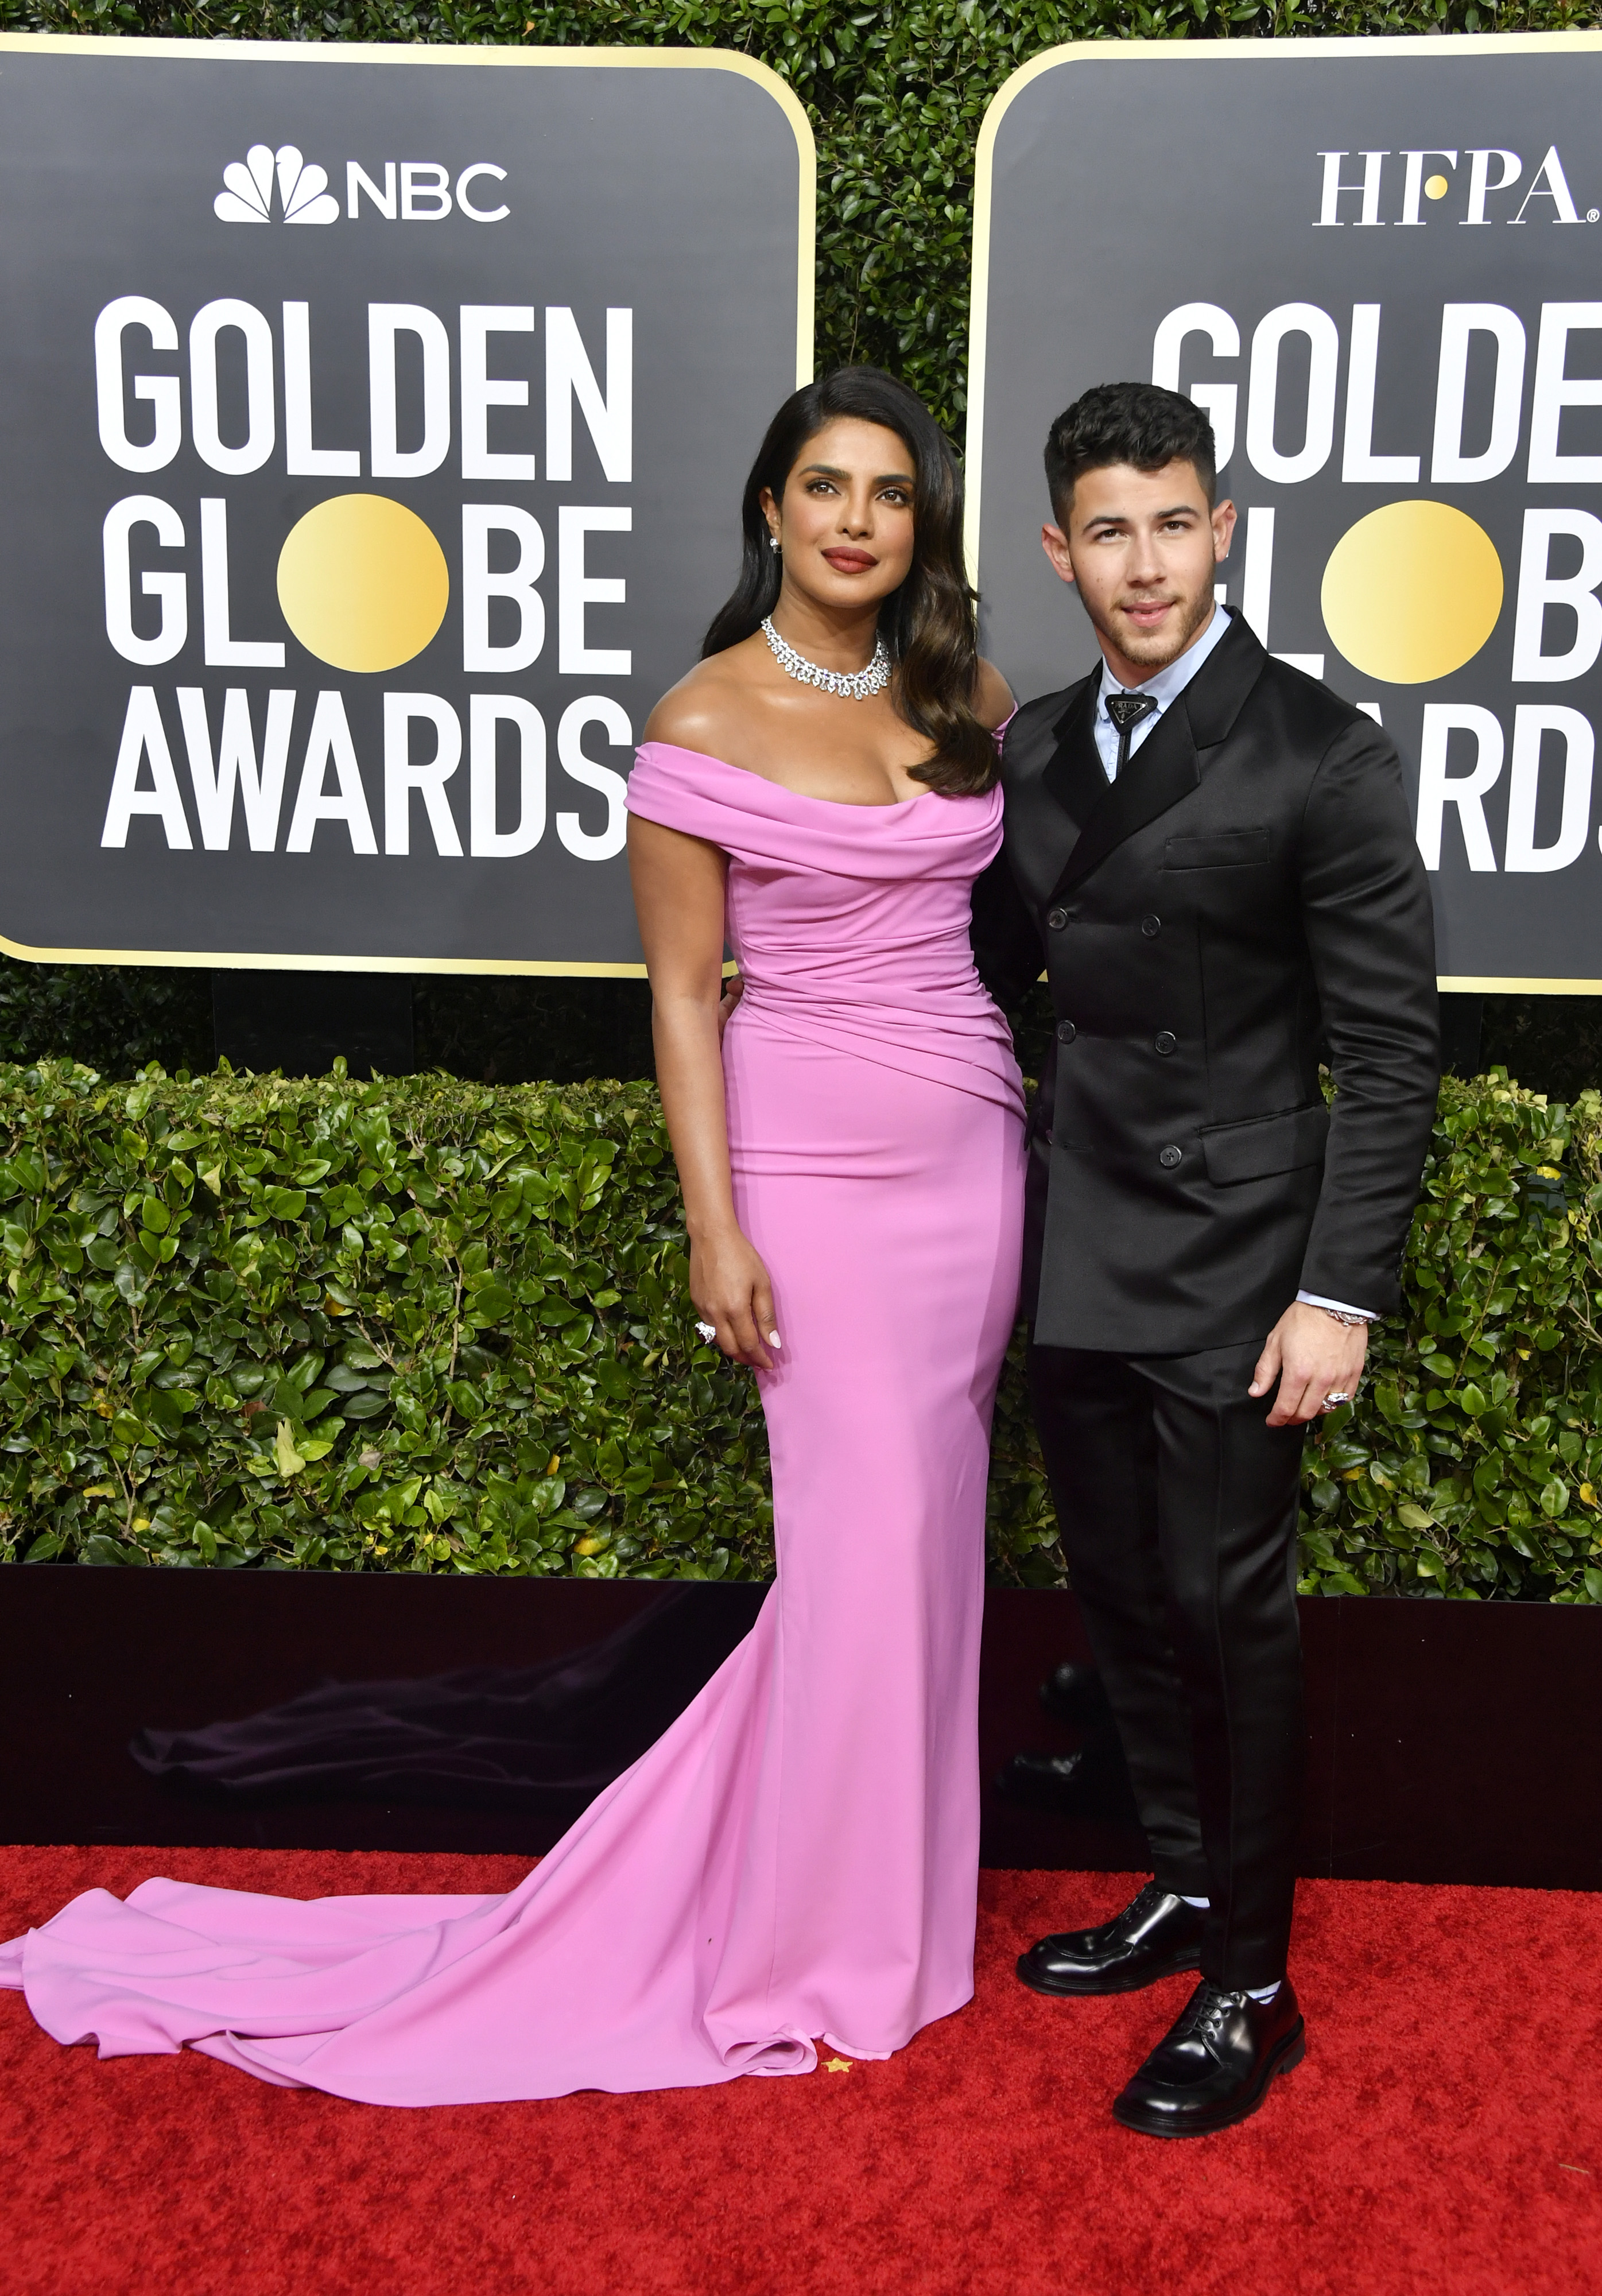 BEVERLY HILLS, CALIFORNIA - JANUARY 05: (L-R) Priyanka Chopra Jonas and Nick Jonas attend the 77th Annual Golden Globe Awards at The Beverly Hilton Hotel on January 05, 2020 in Beverly Hills, California. (Photo by Frazer Harrison/Getty Images)